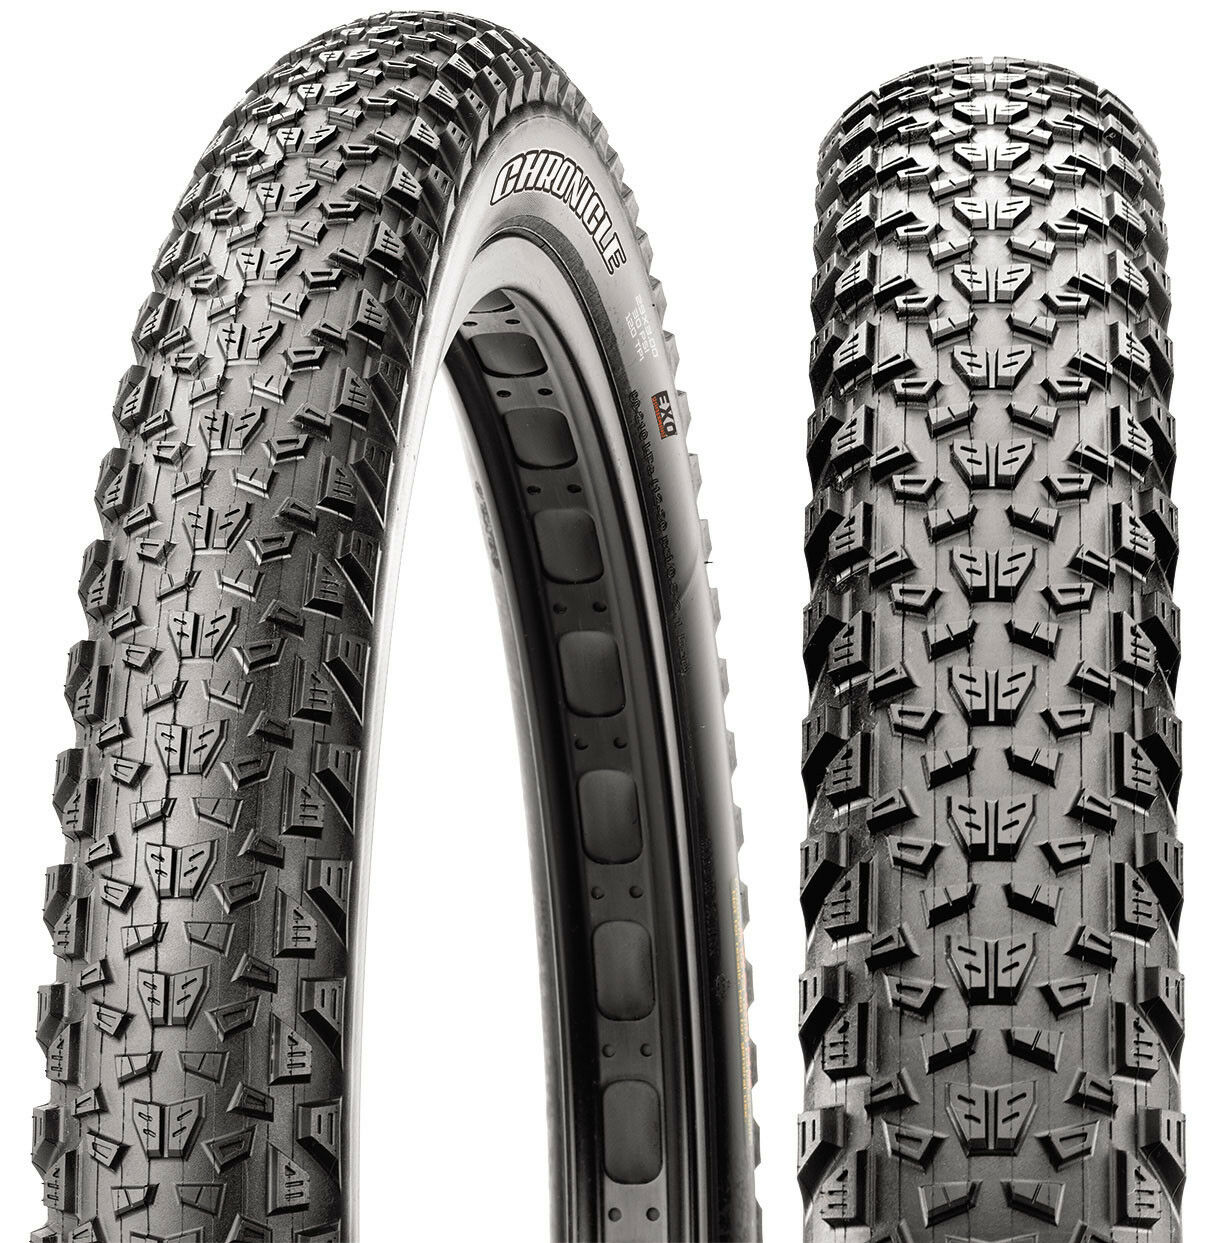 MAXXIS Chronicle 27.5x3.00 120TPI Foldable Exo   TR Dual  990g  sale online